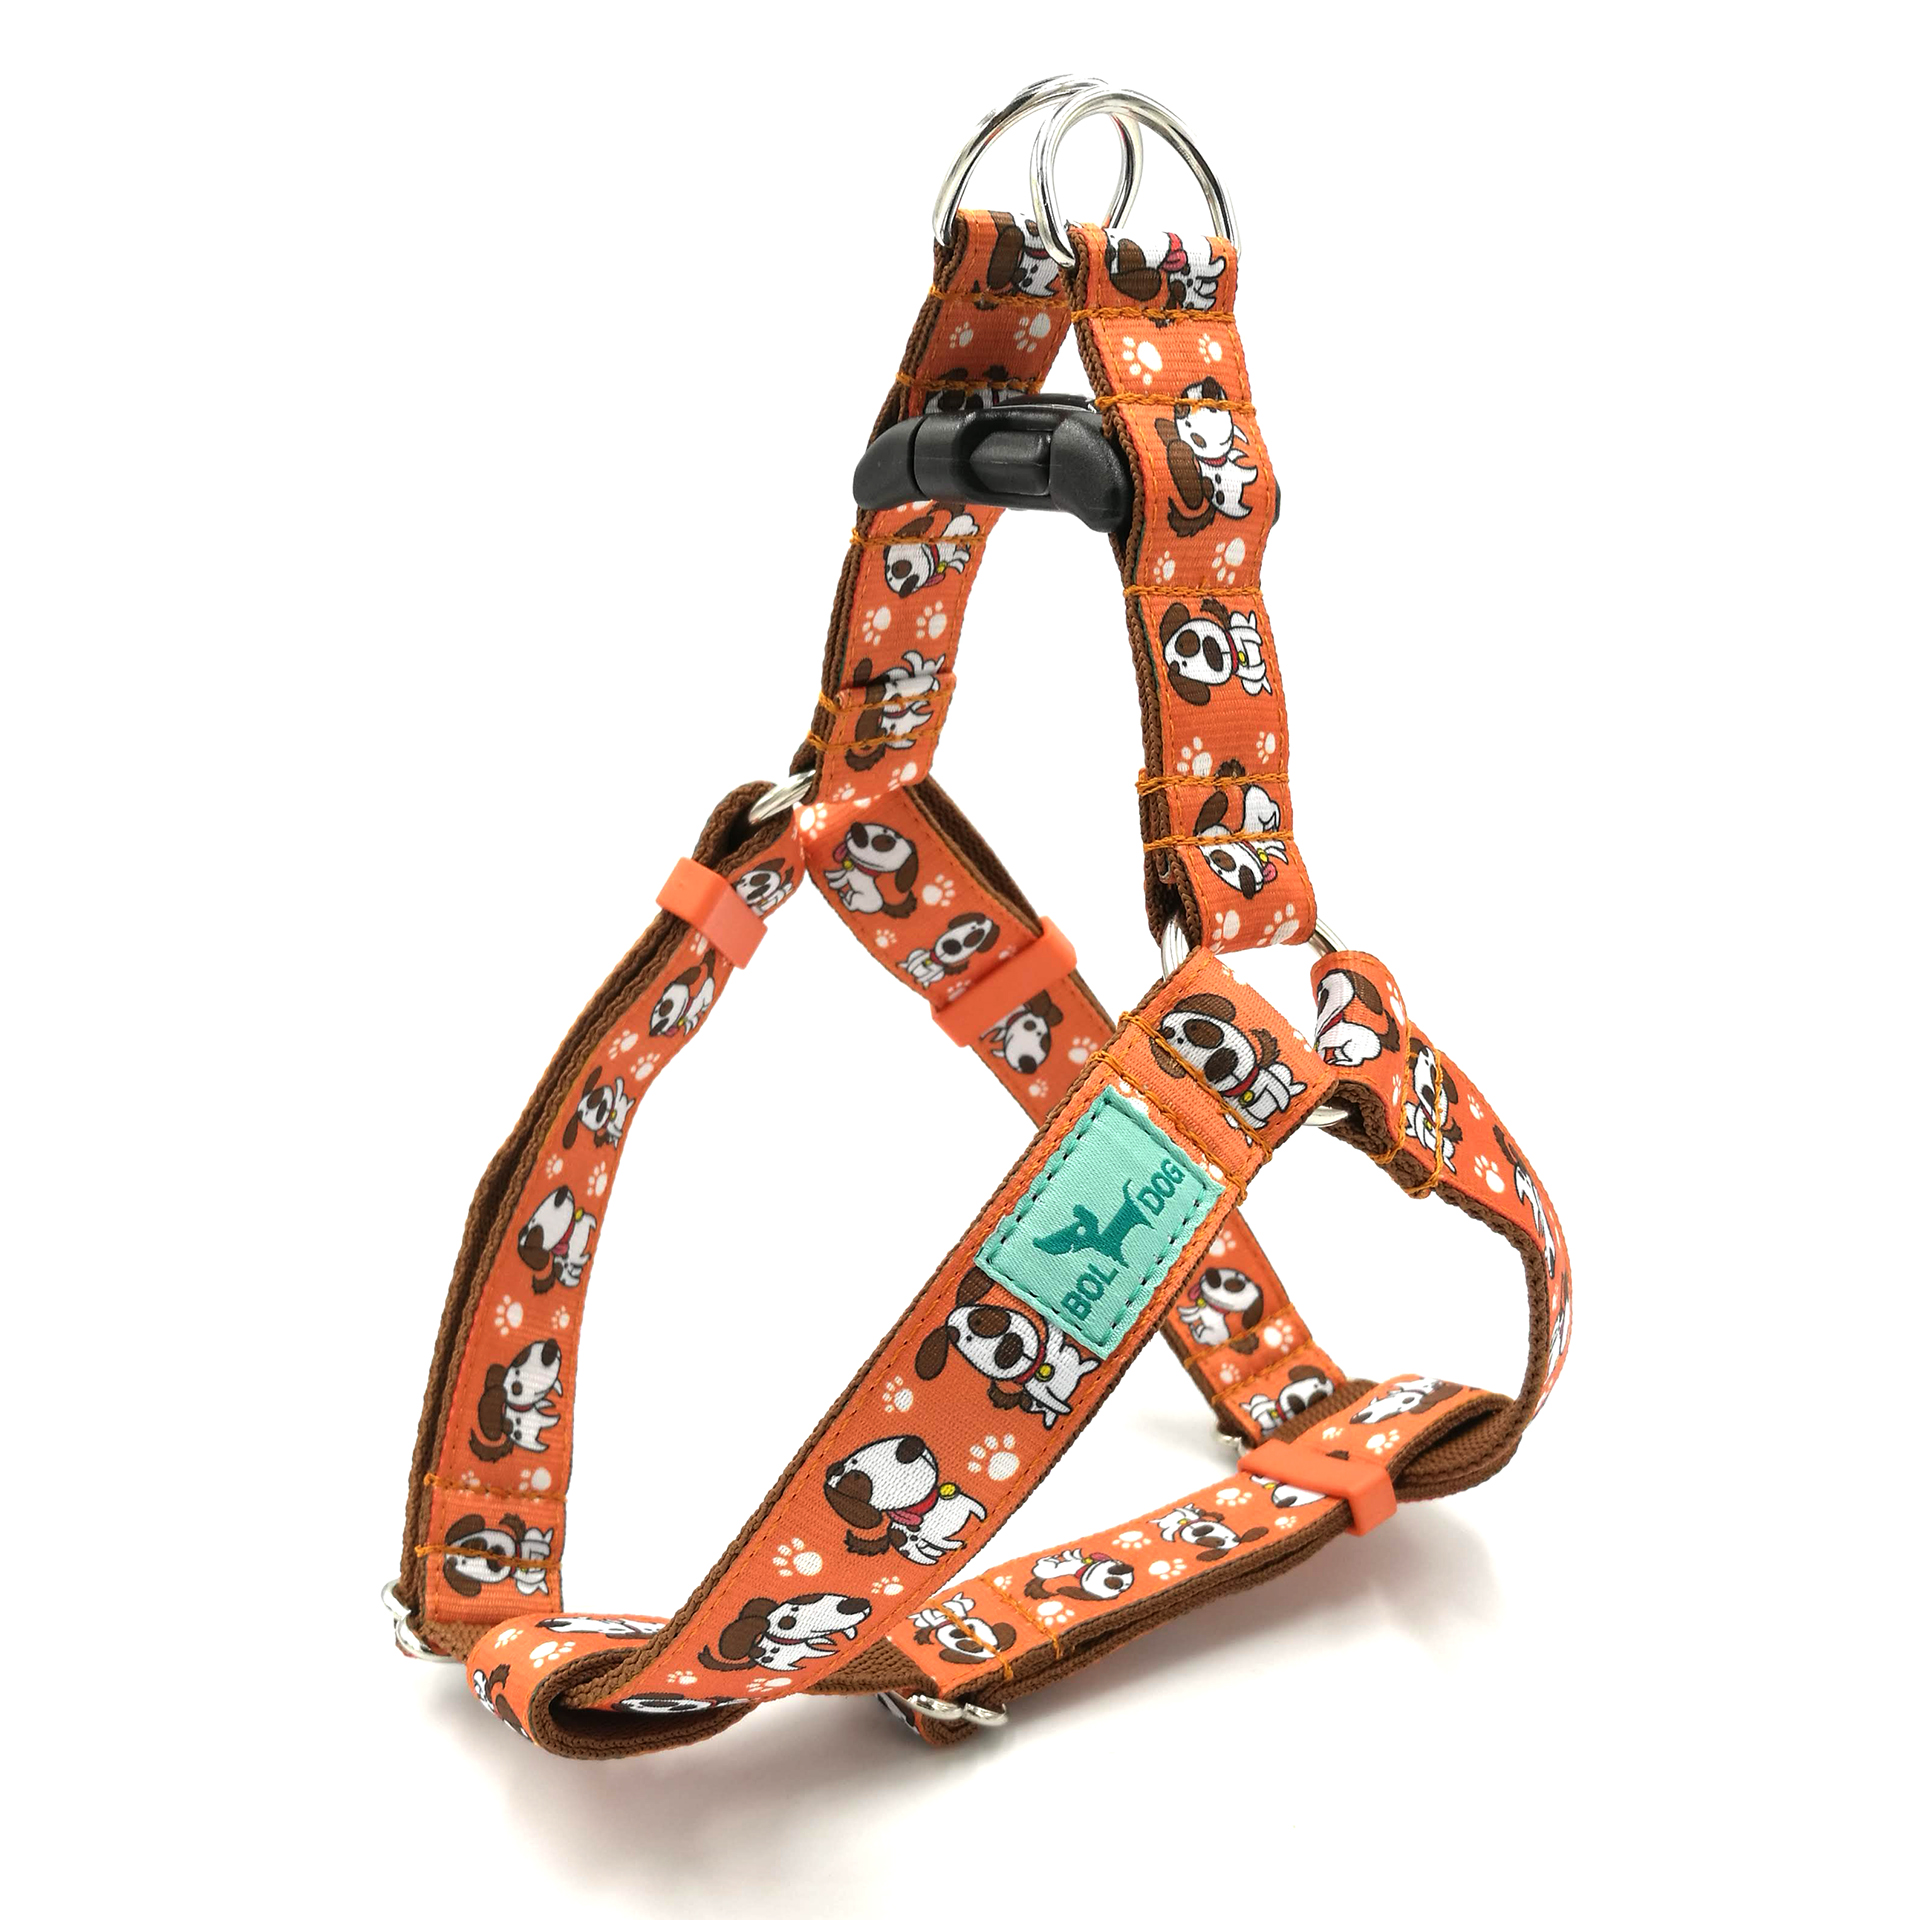 Spotted dog harness